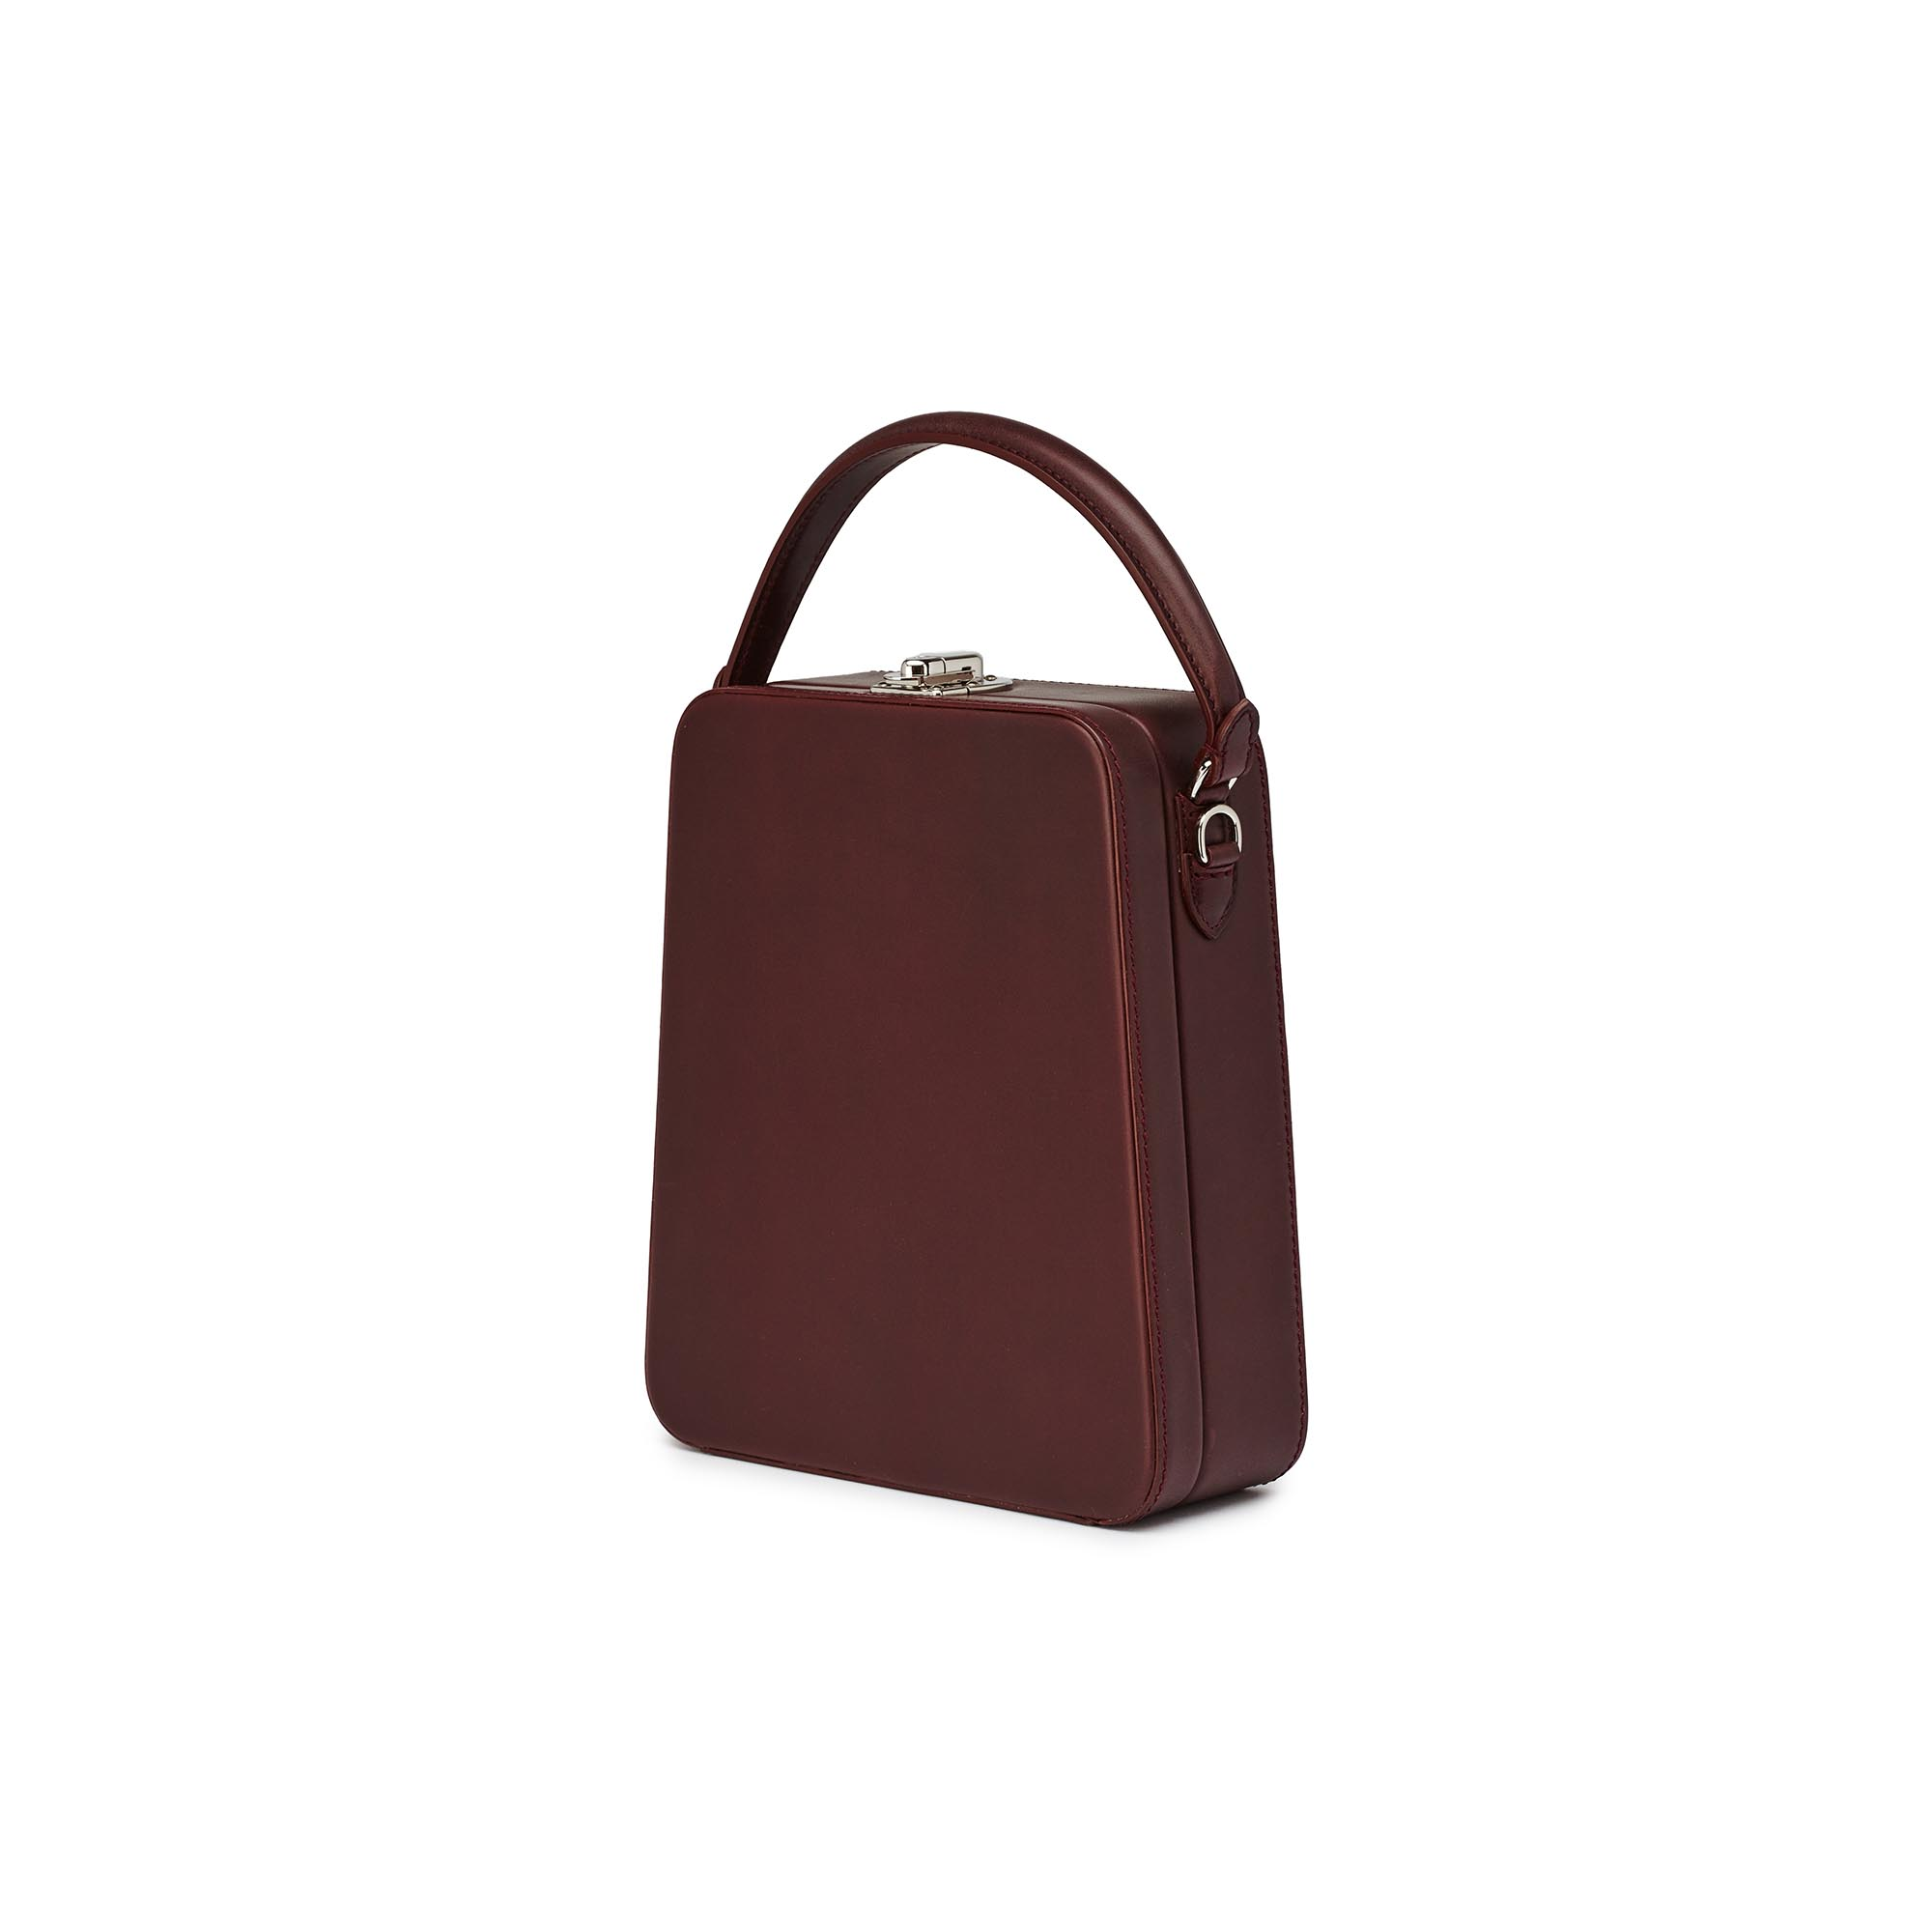 Tall-Bertoncina-burgundy-french-calf-bag-Bertoni-1949_02